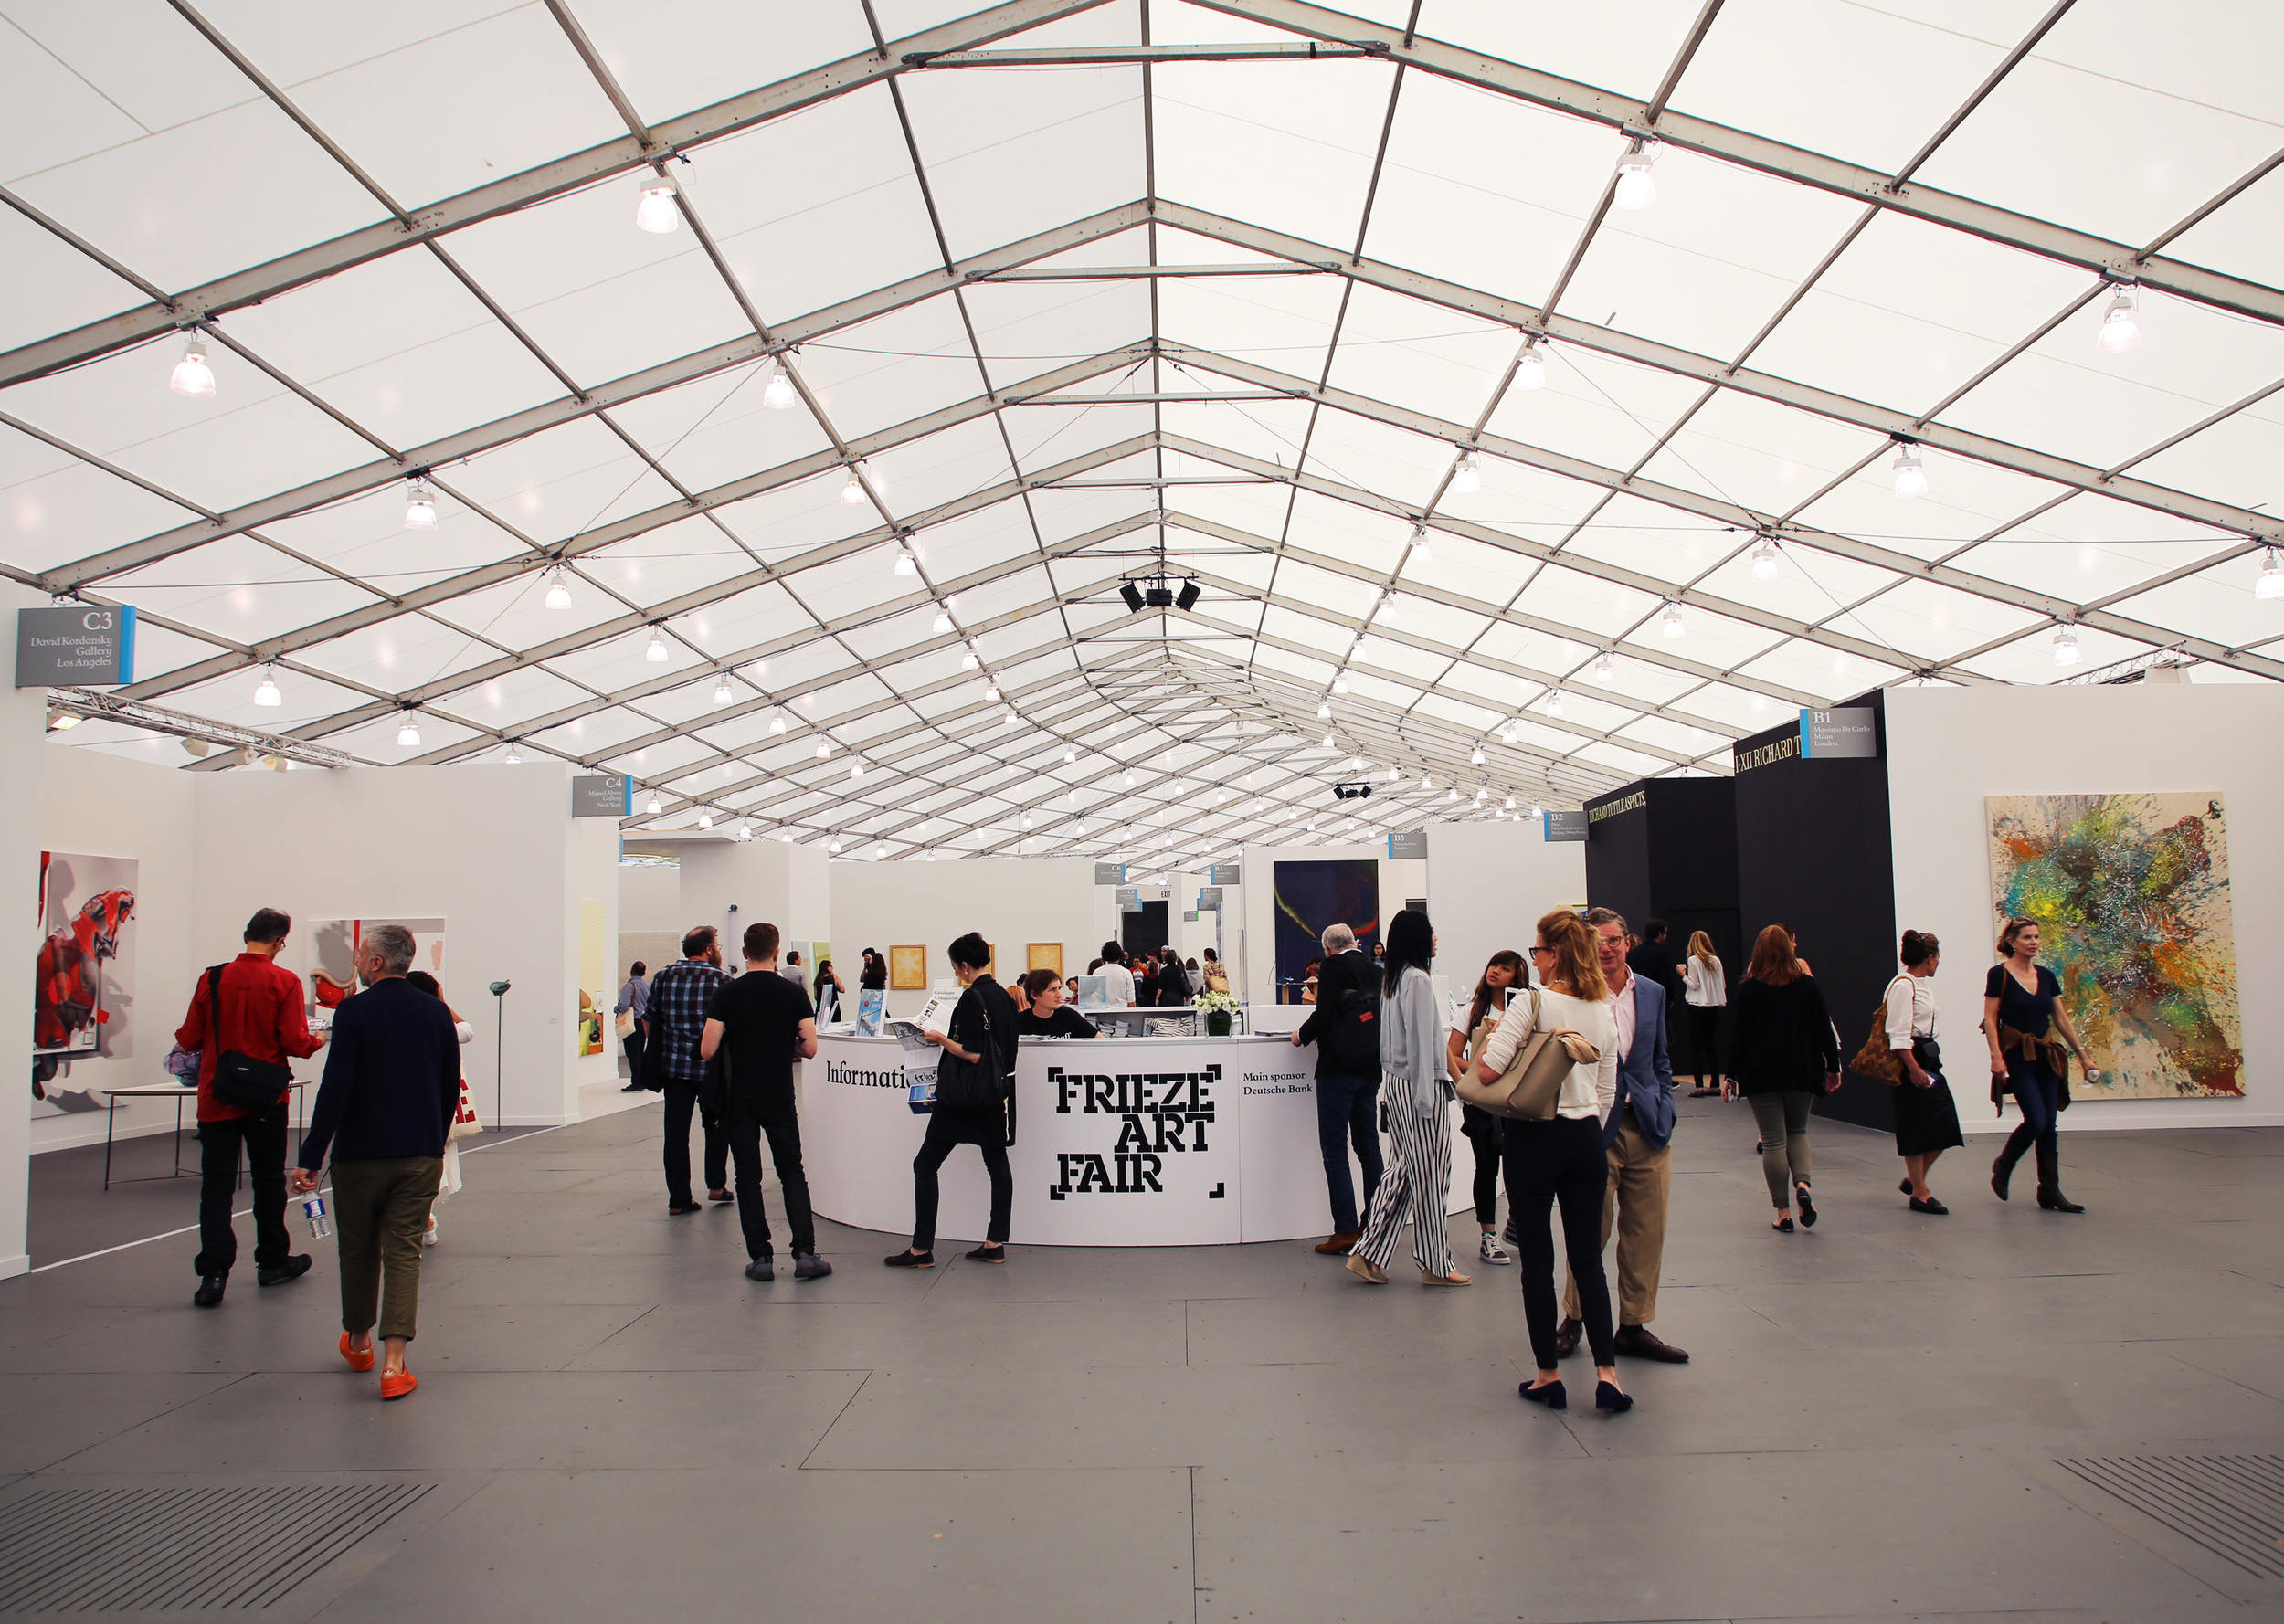 frieze fair1.jpg